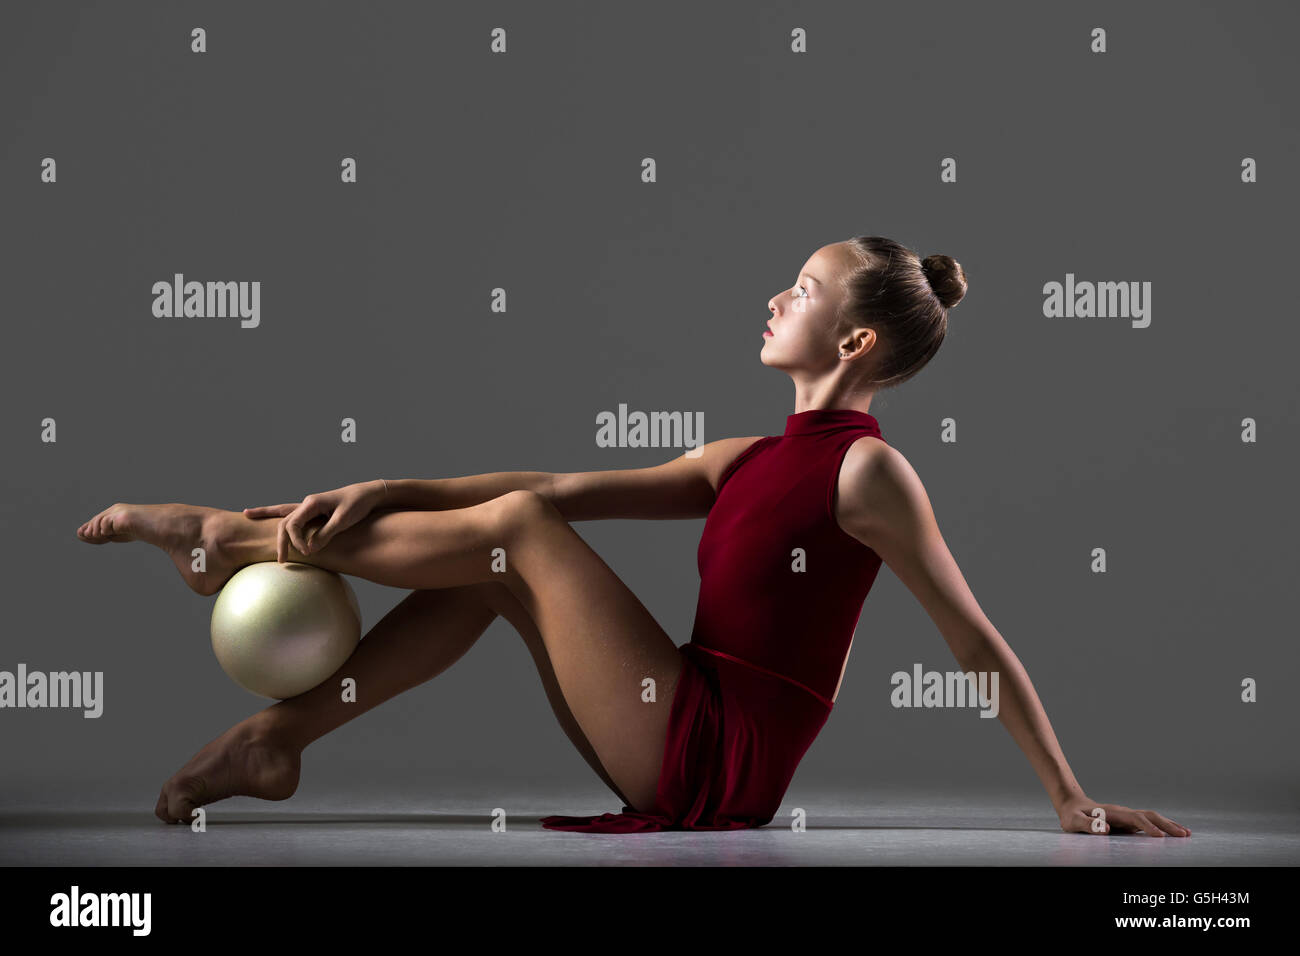 Beautiful cool young fit gymnast athlete woman in sportswear red dress working out, doing art gymnastics exercise - Stock Image